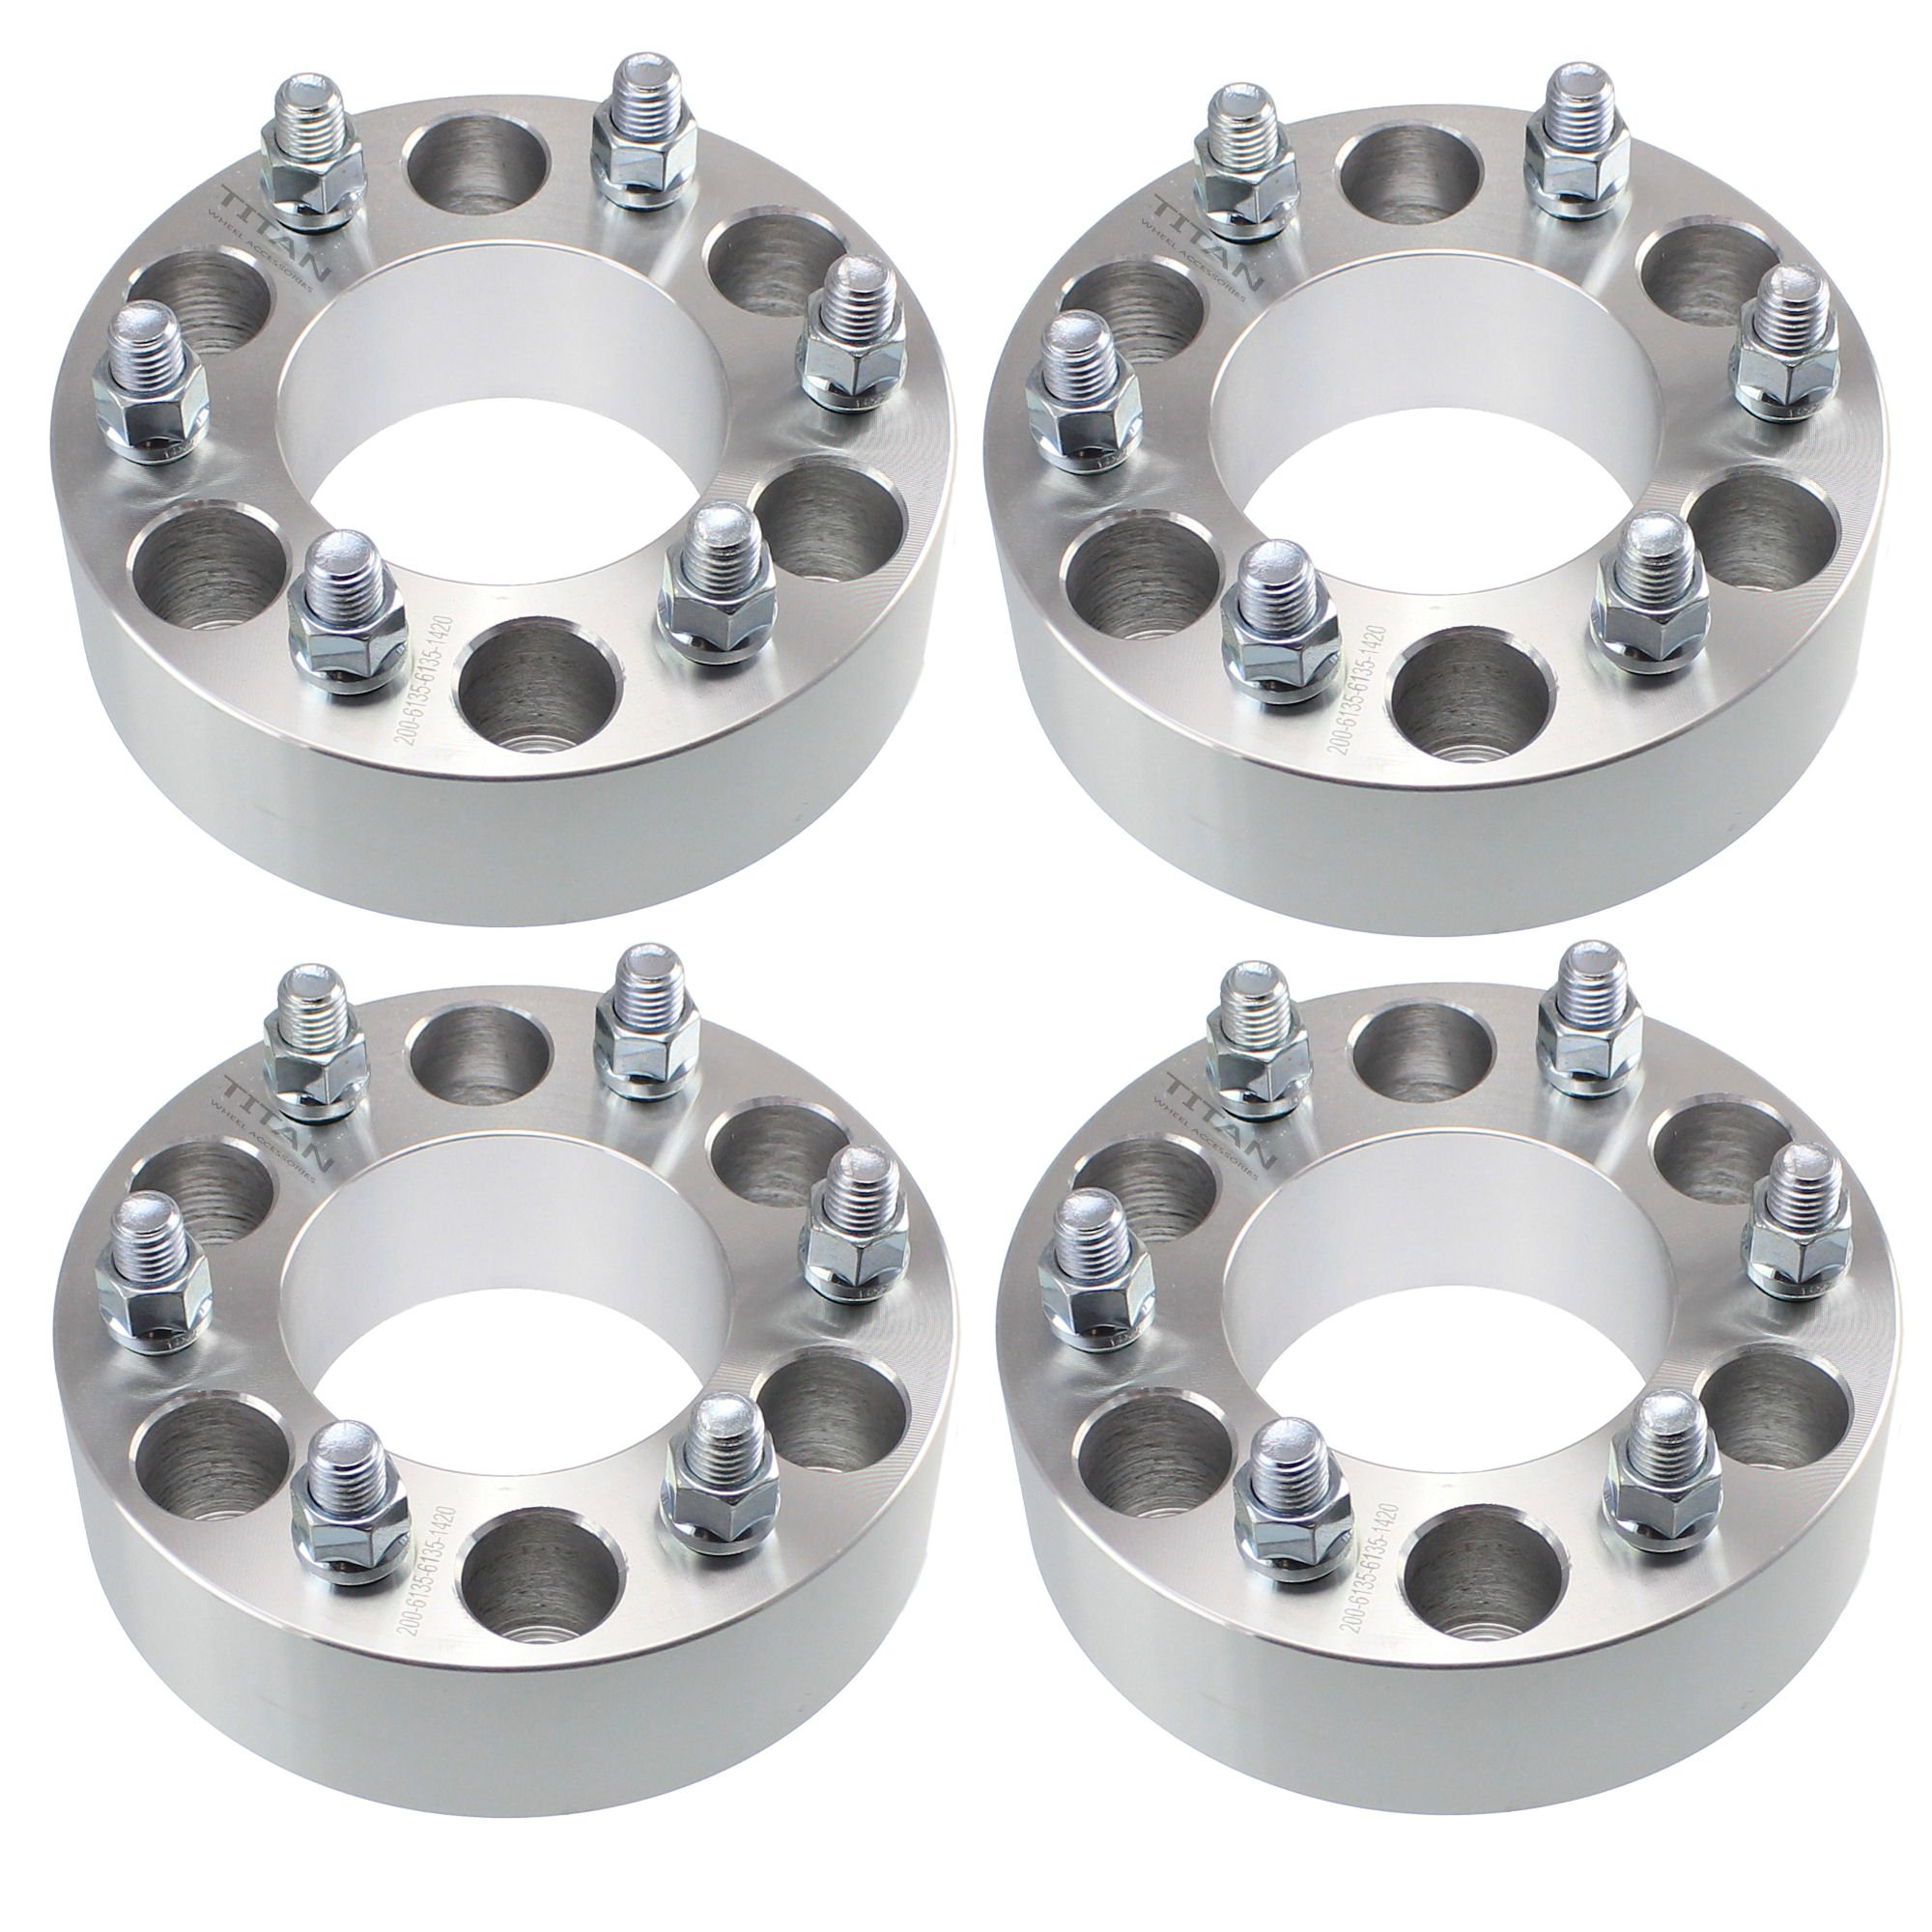 4pcs 2'' 6x135 to 6x135 Wheel Spacers | 14x2 Coarse Studs | Fits Ford Expedition F150 Lincoln Navigator Mark LT Adapters